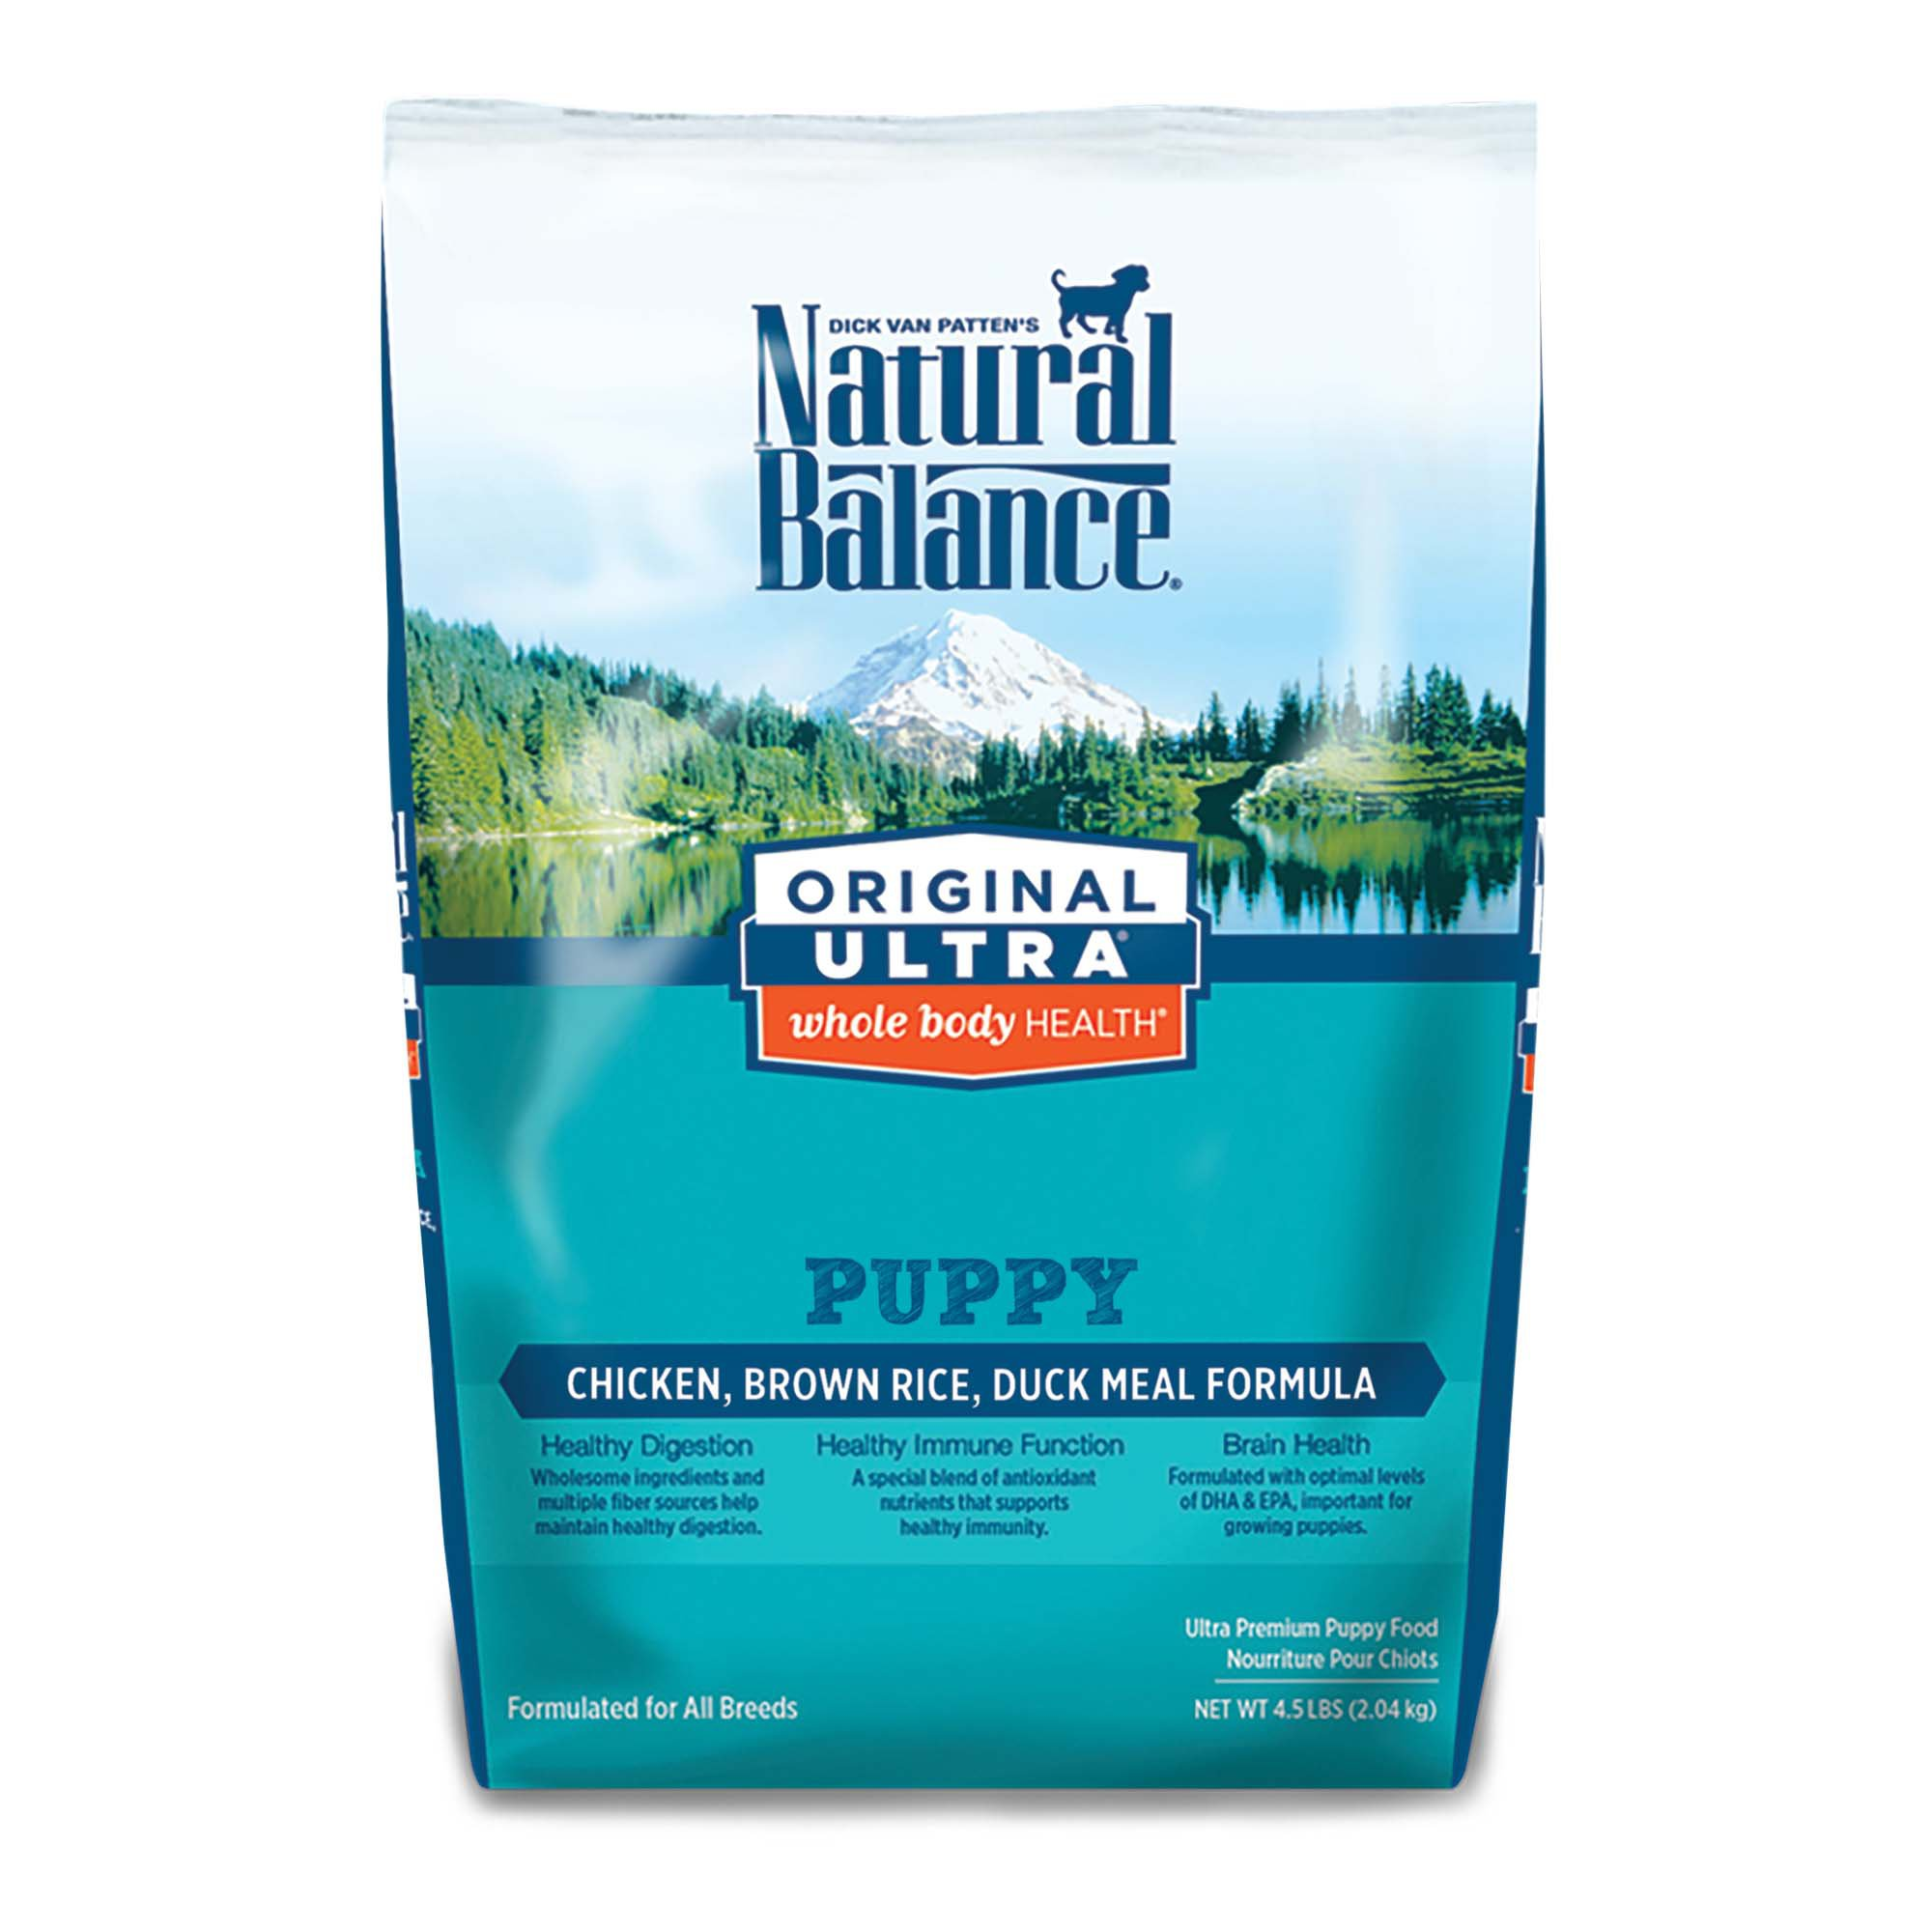 Buy Natural Balance Cat Food Online